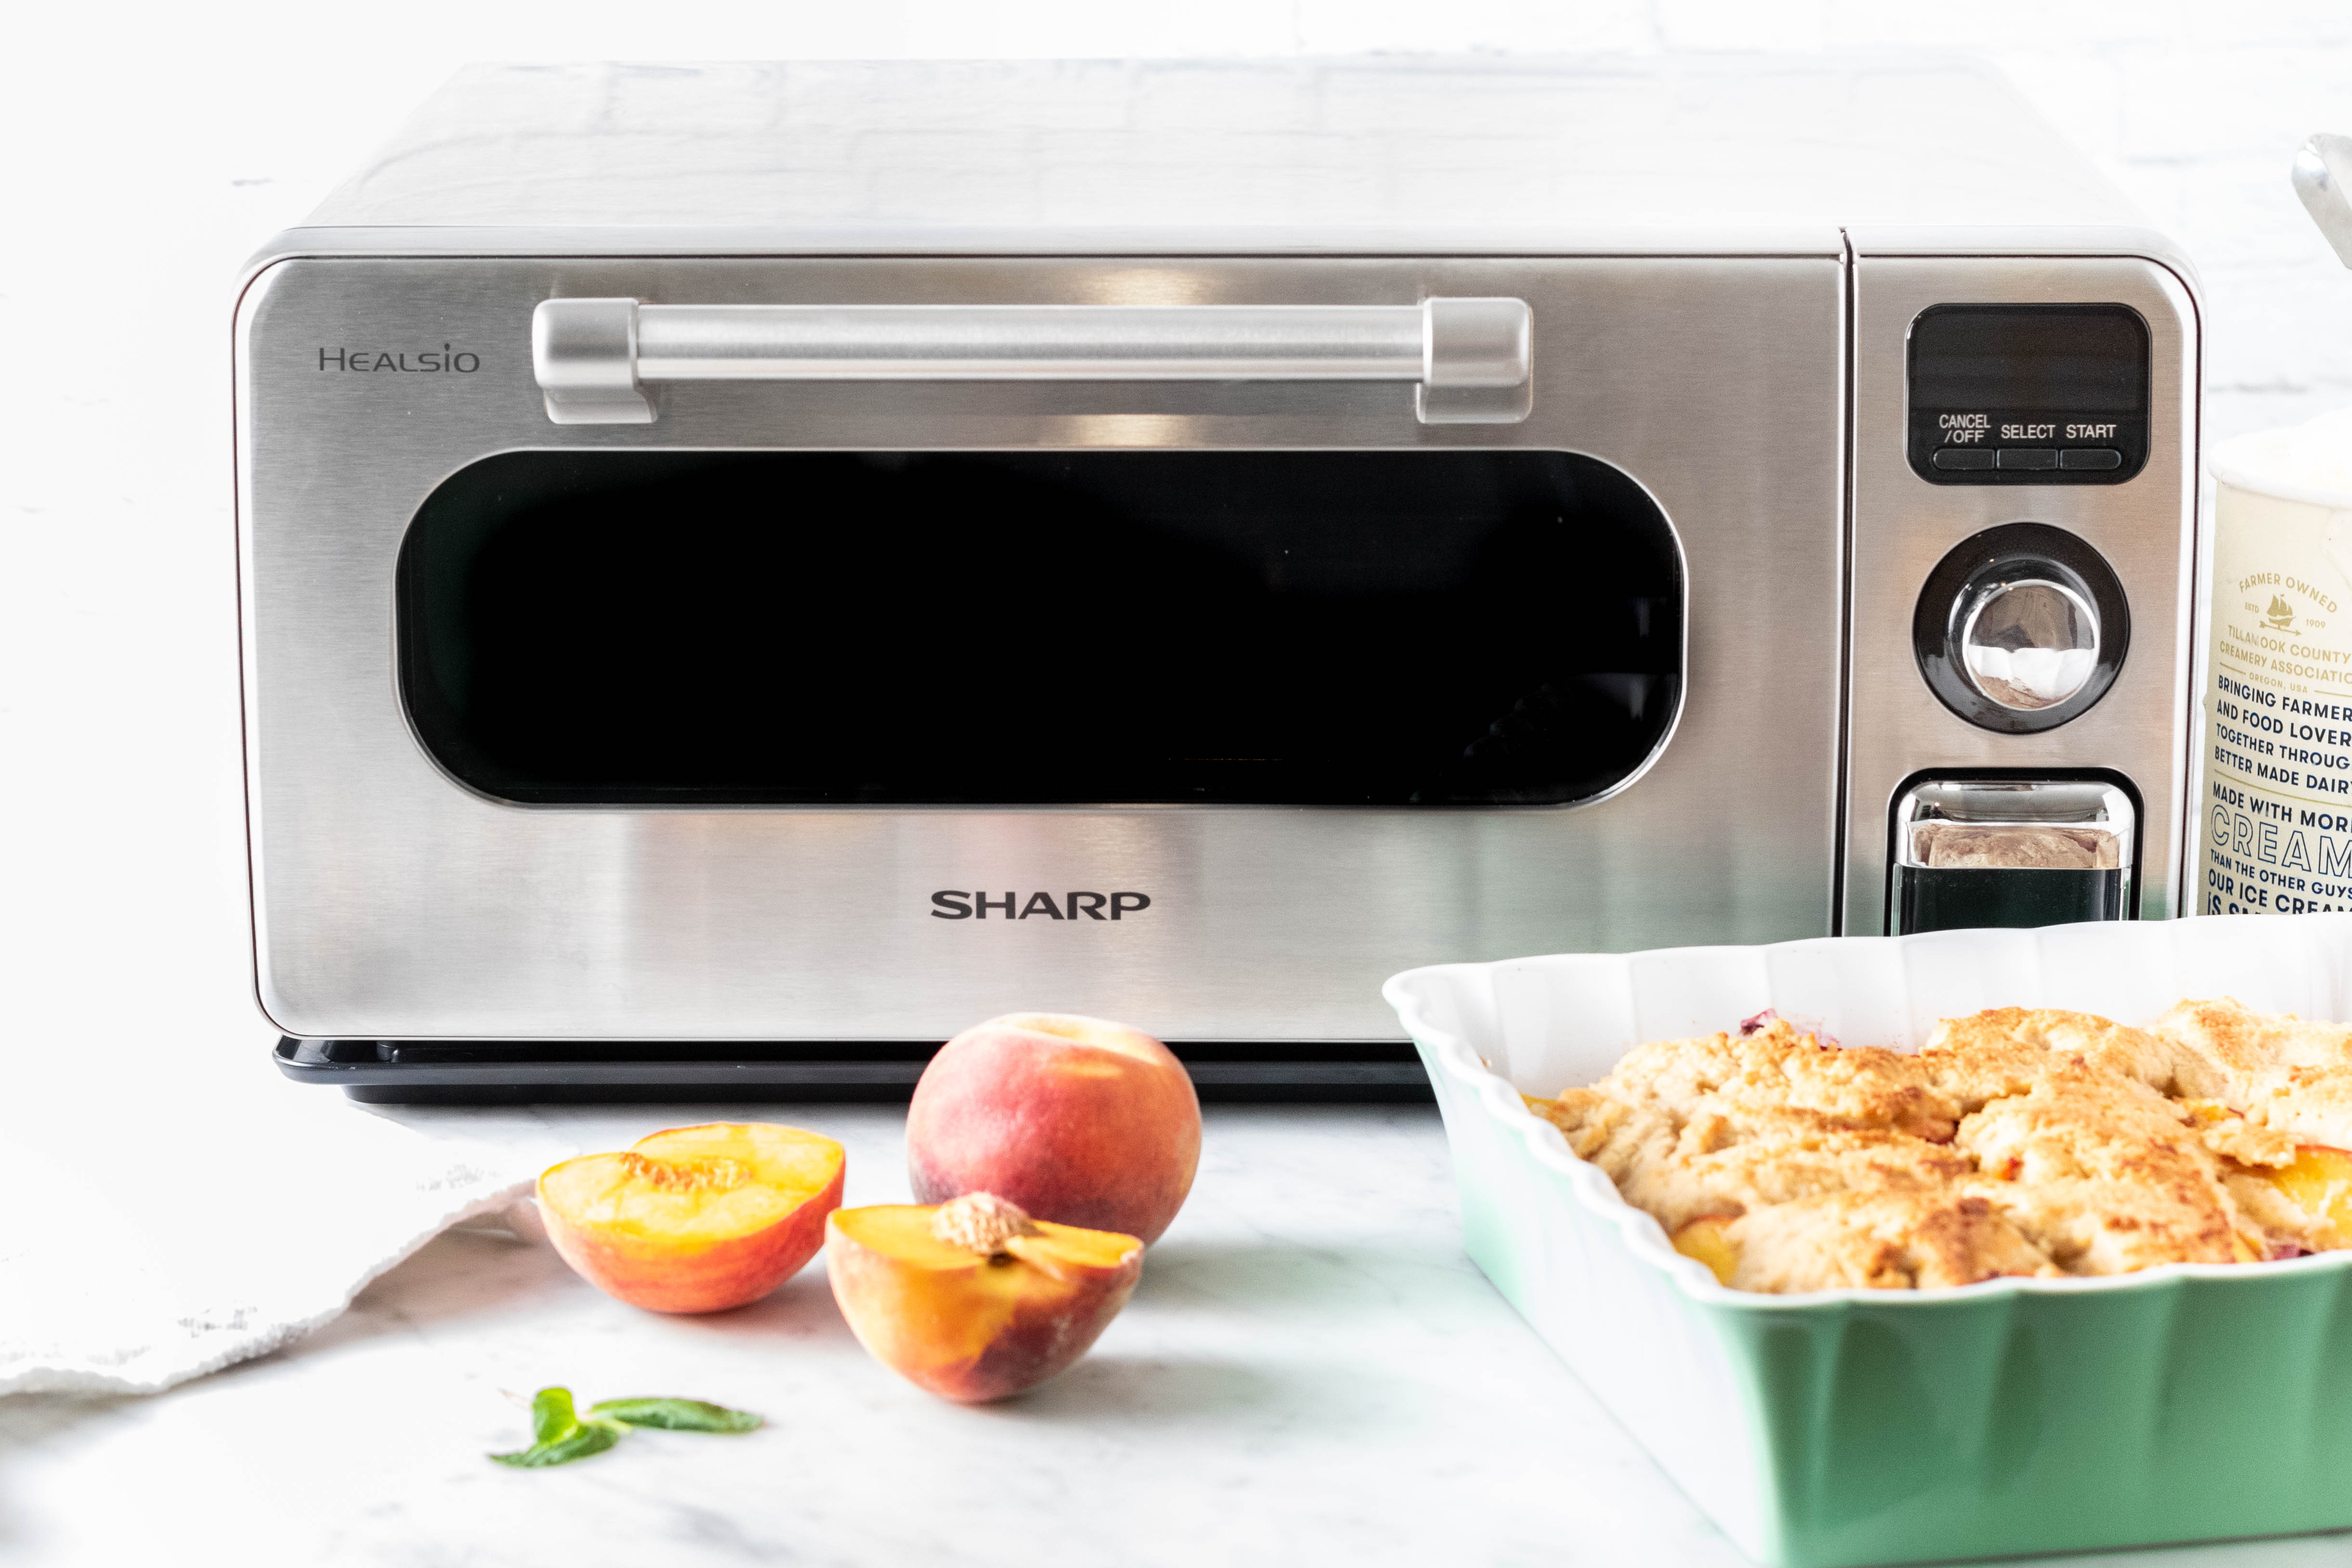 The Sharp Superheated Steam Countertop Oven (SSC0586DS)